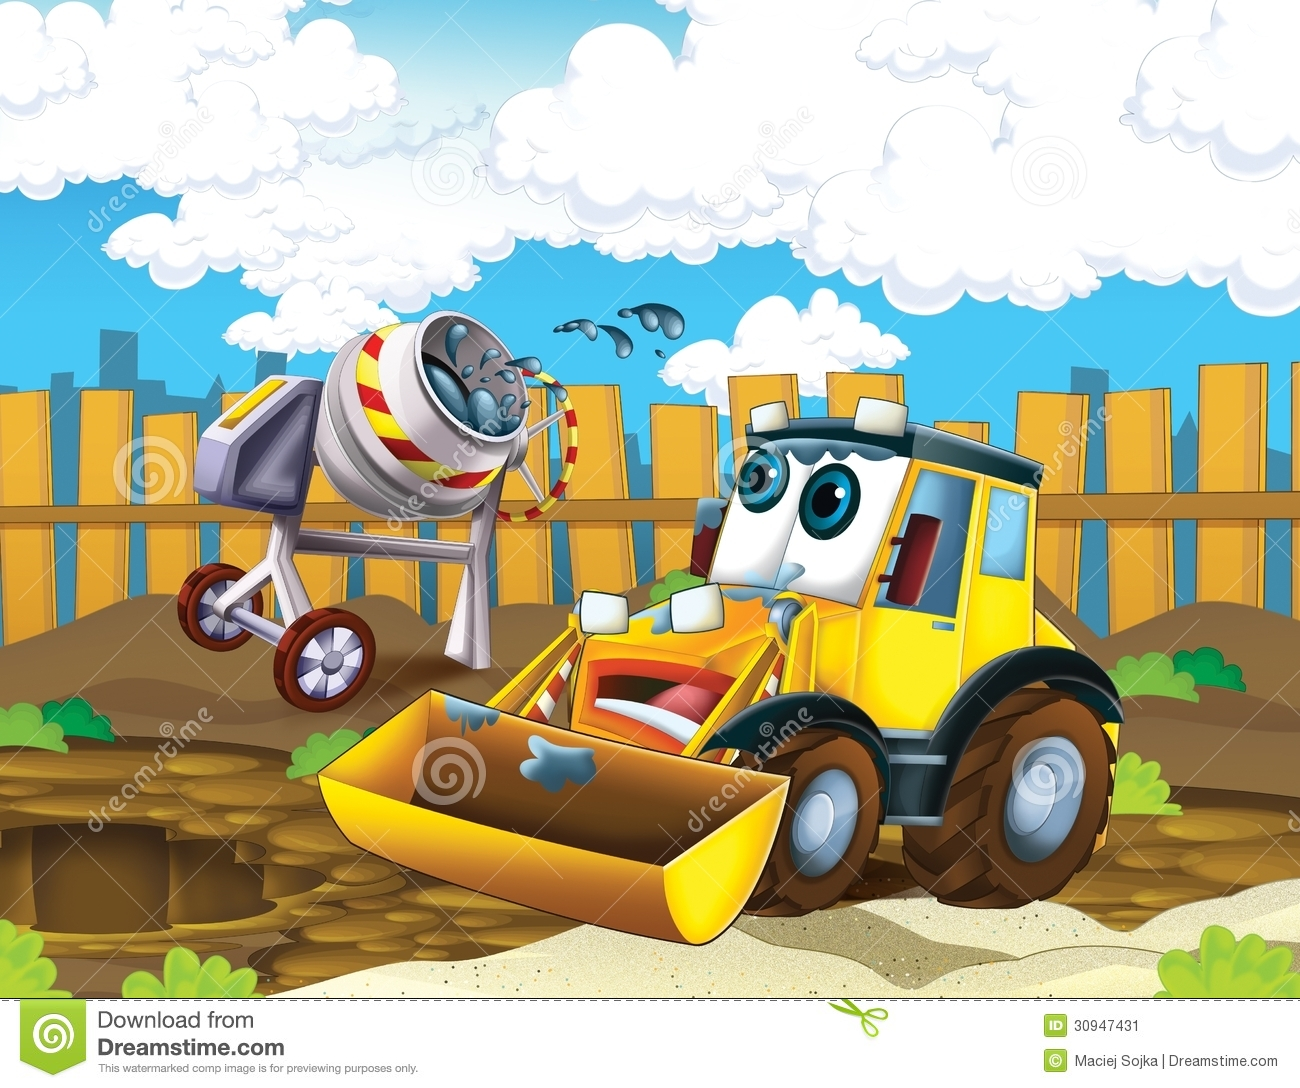 The Cartoon Digger Illustration For Children Stock Image